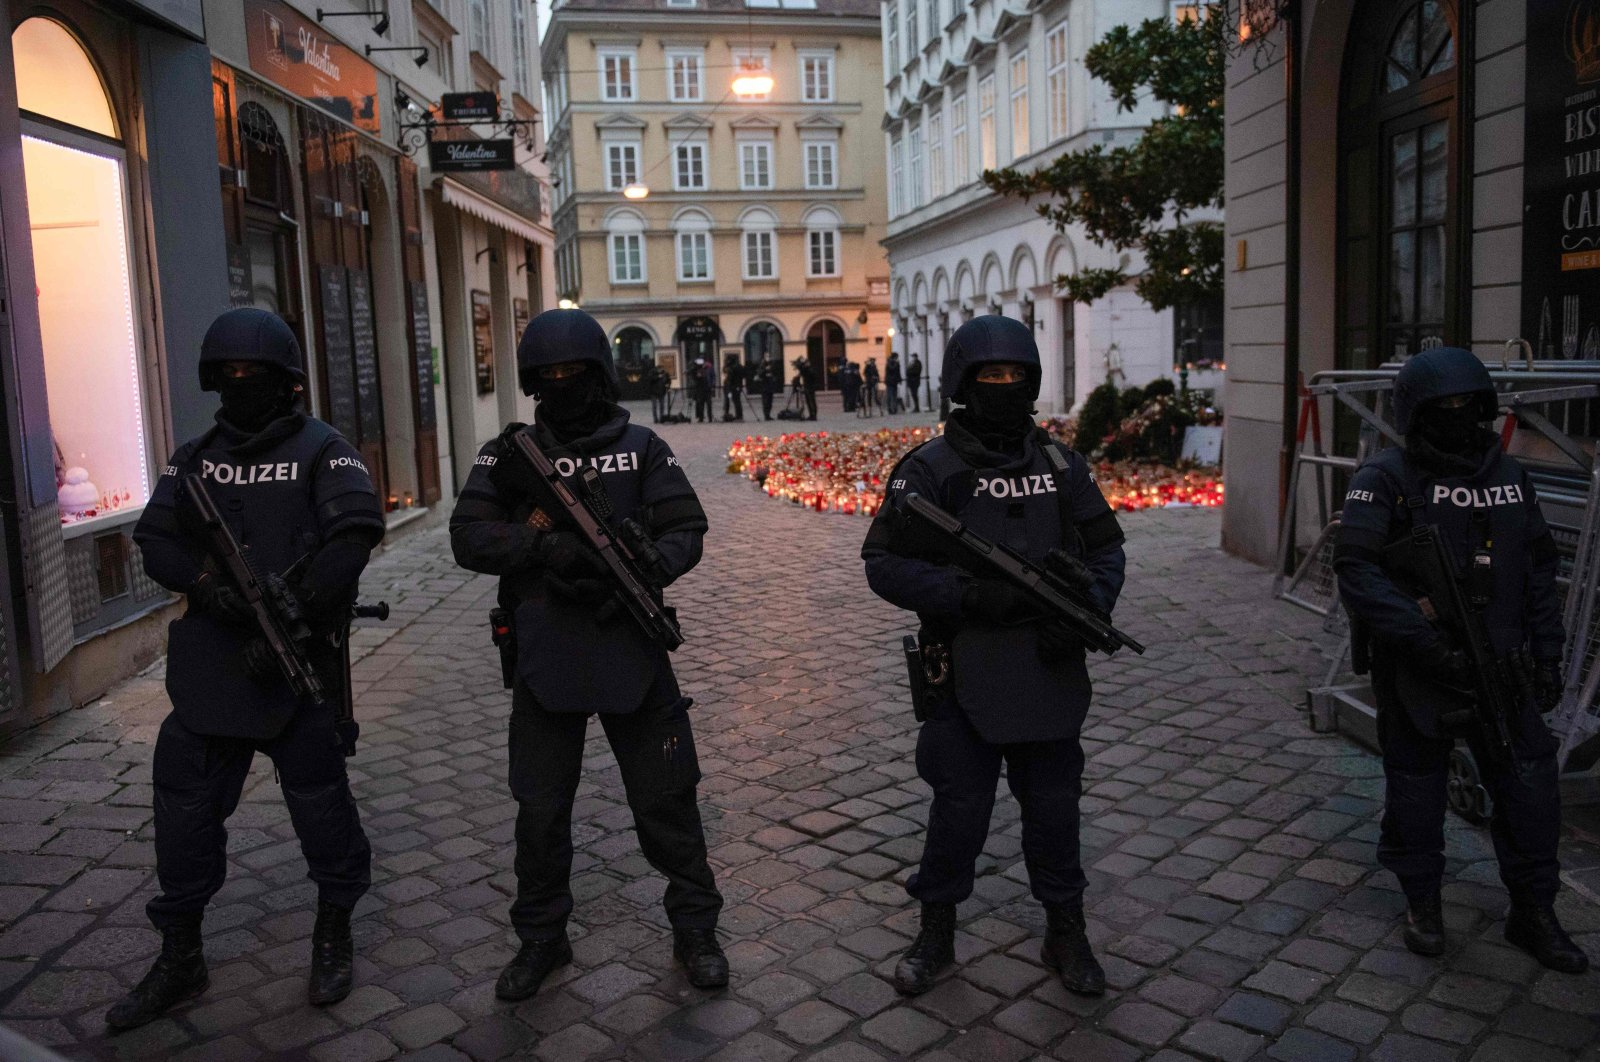 Armed police officers stand guard before the arrival of Austrian Chancellor Kurz and European Council President Charles Michel for a visit to pay respects to the victims of the terrorist attack in Vienna, Austria, Nov. 9, 2020. (AFP Photo)